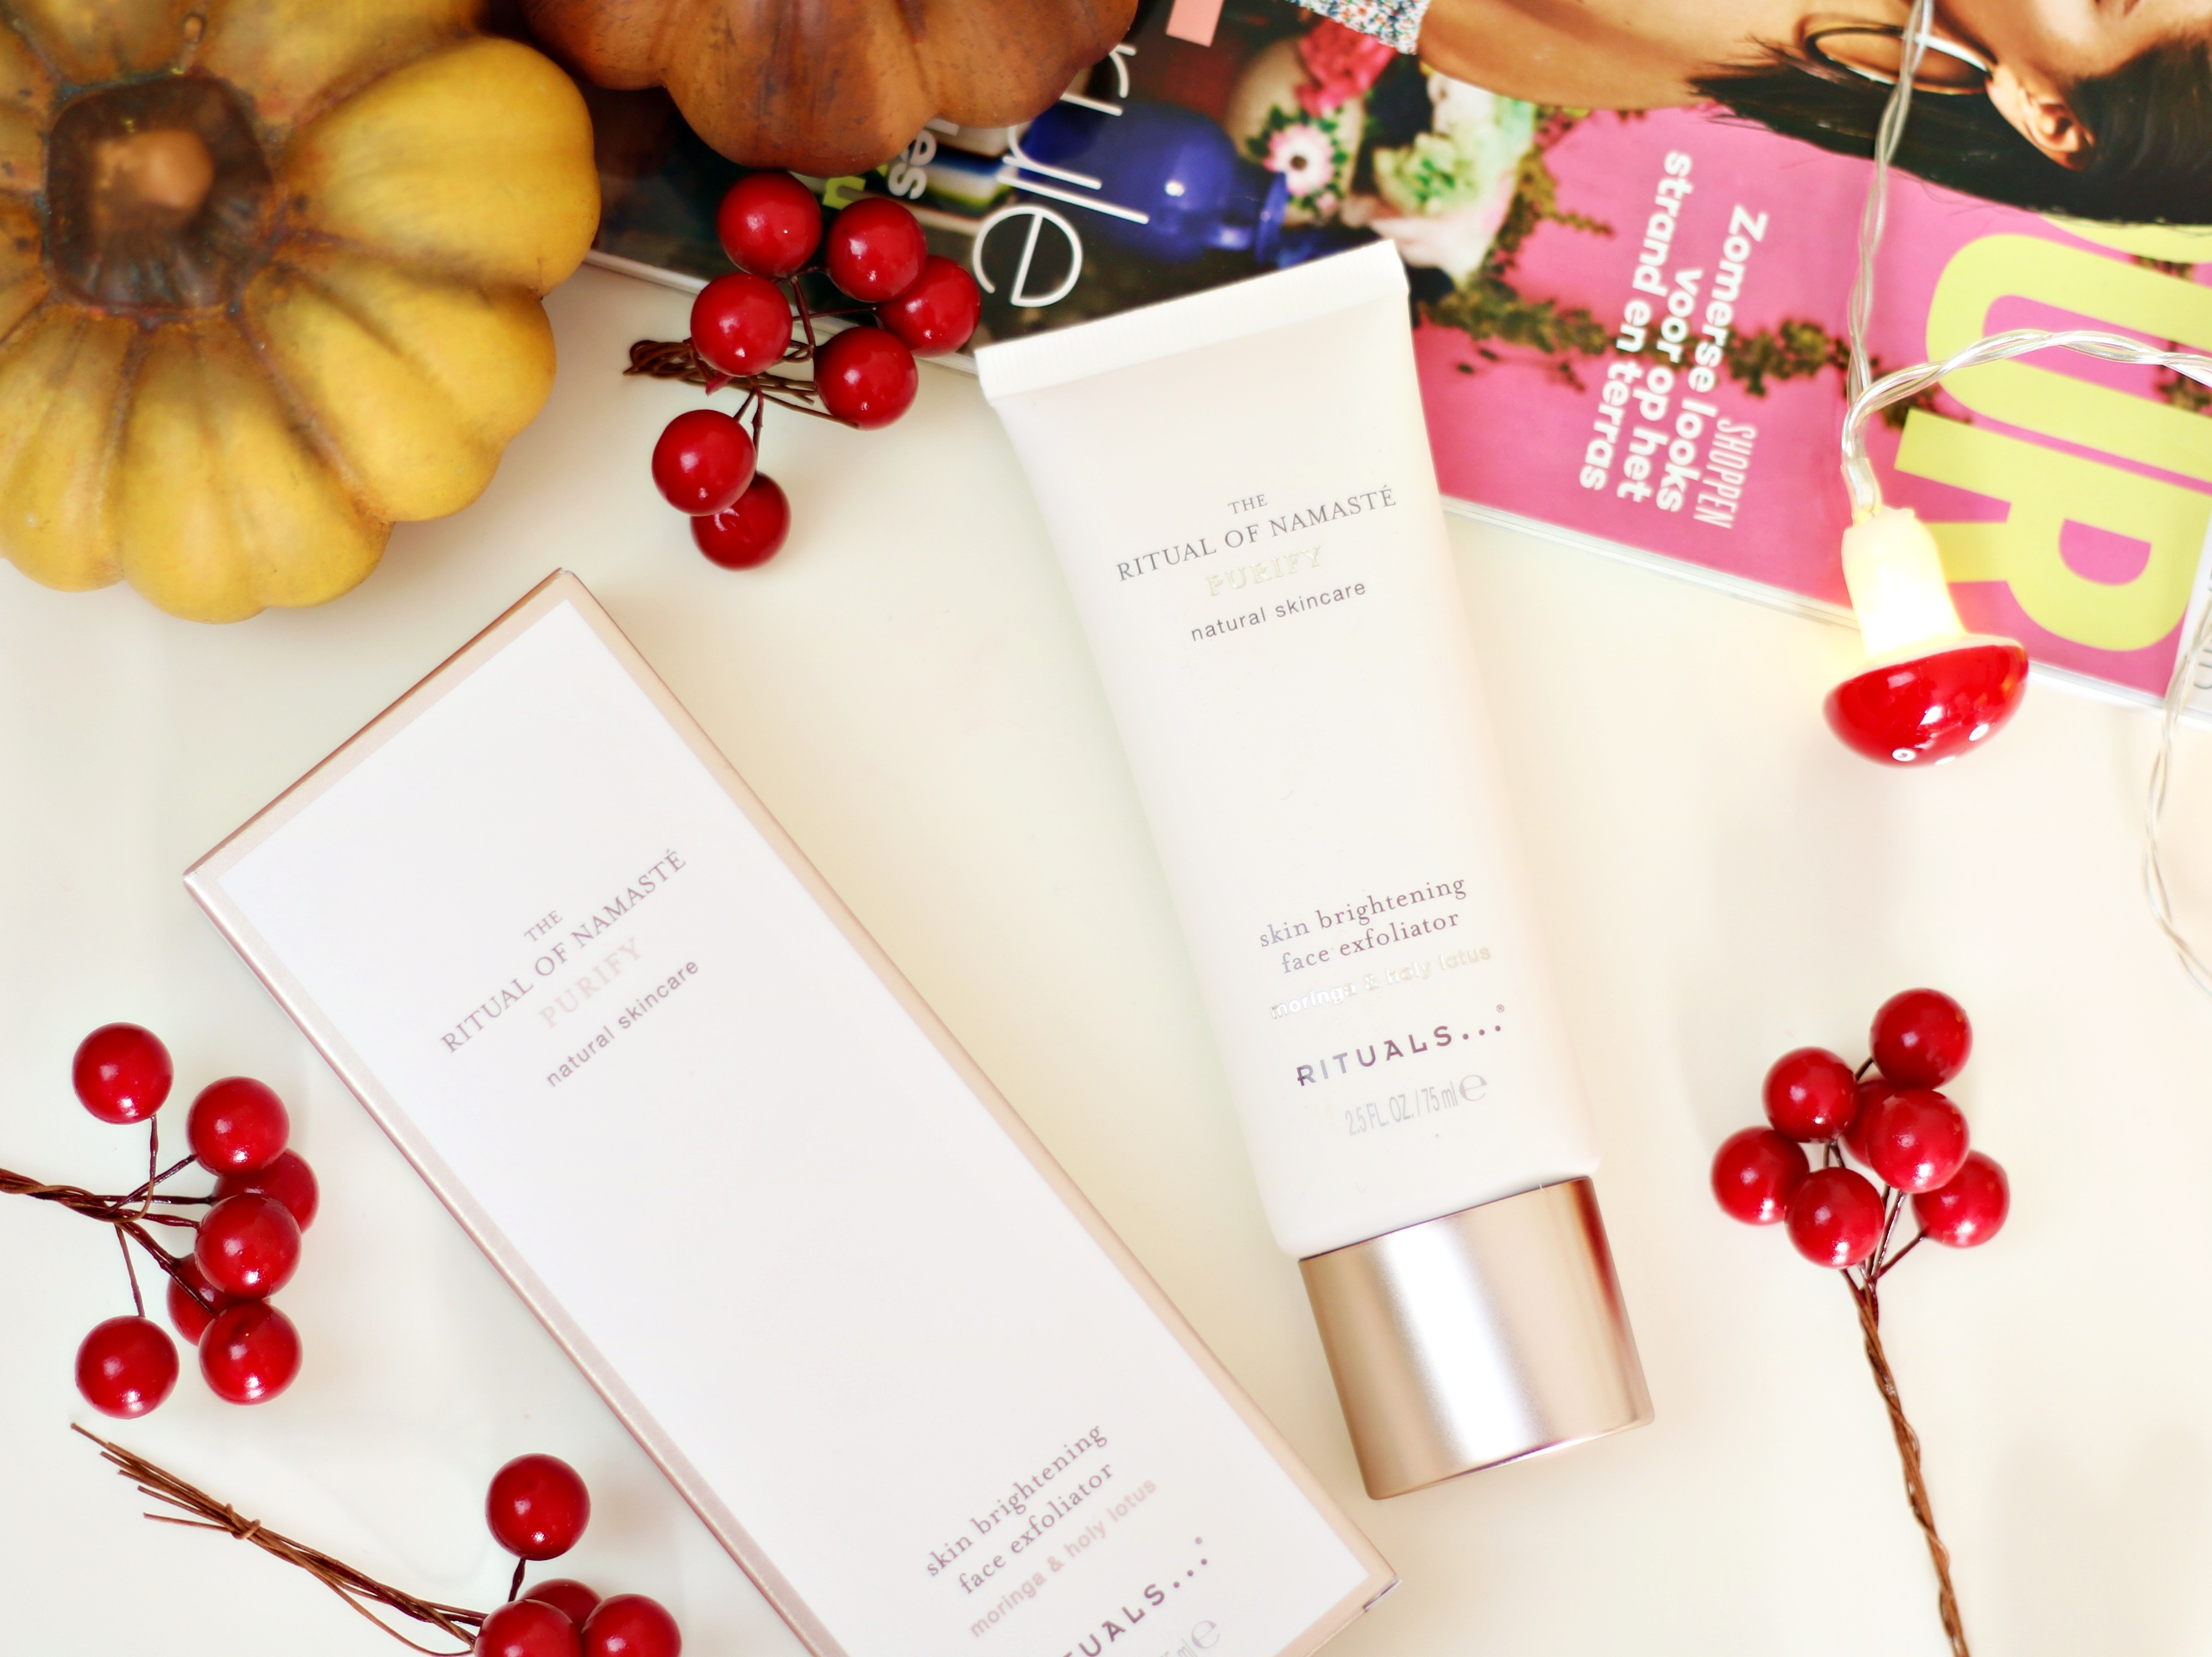 Soft & Nourished Skin With The Rituals The Ritual Of Namaste Skin Brightening Face Exfoliator